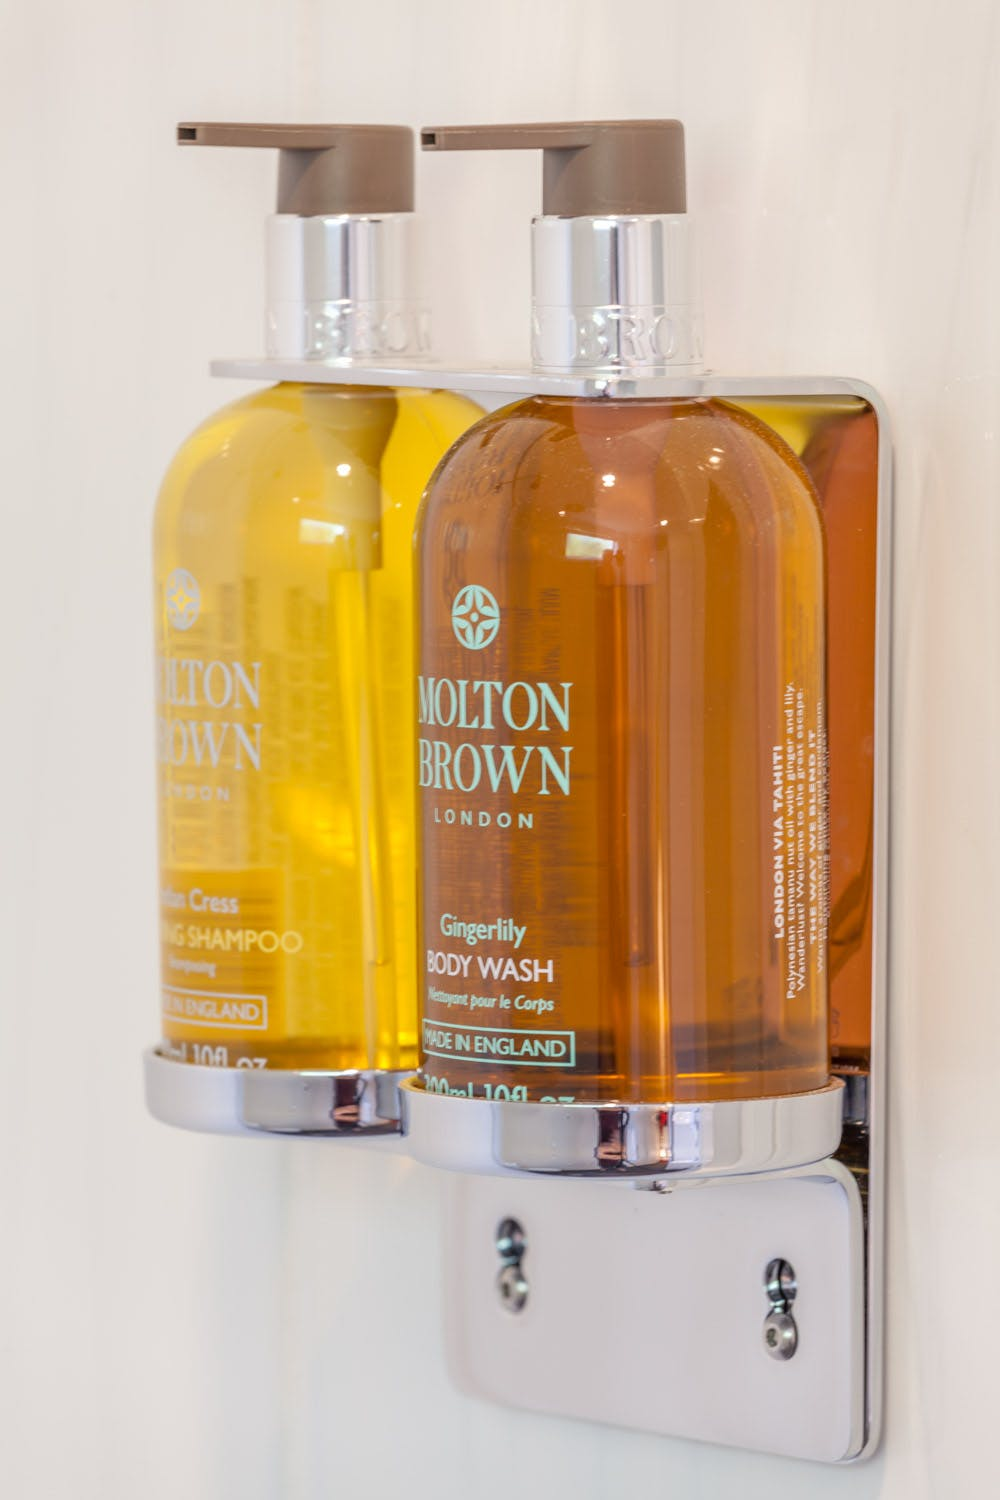 Molton Brown luxury toiletries